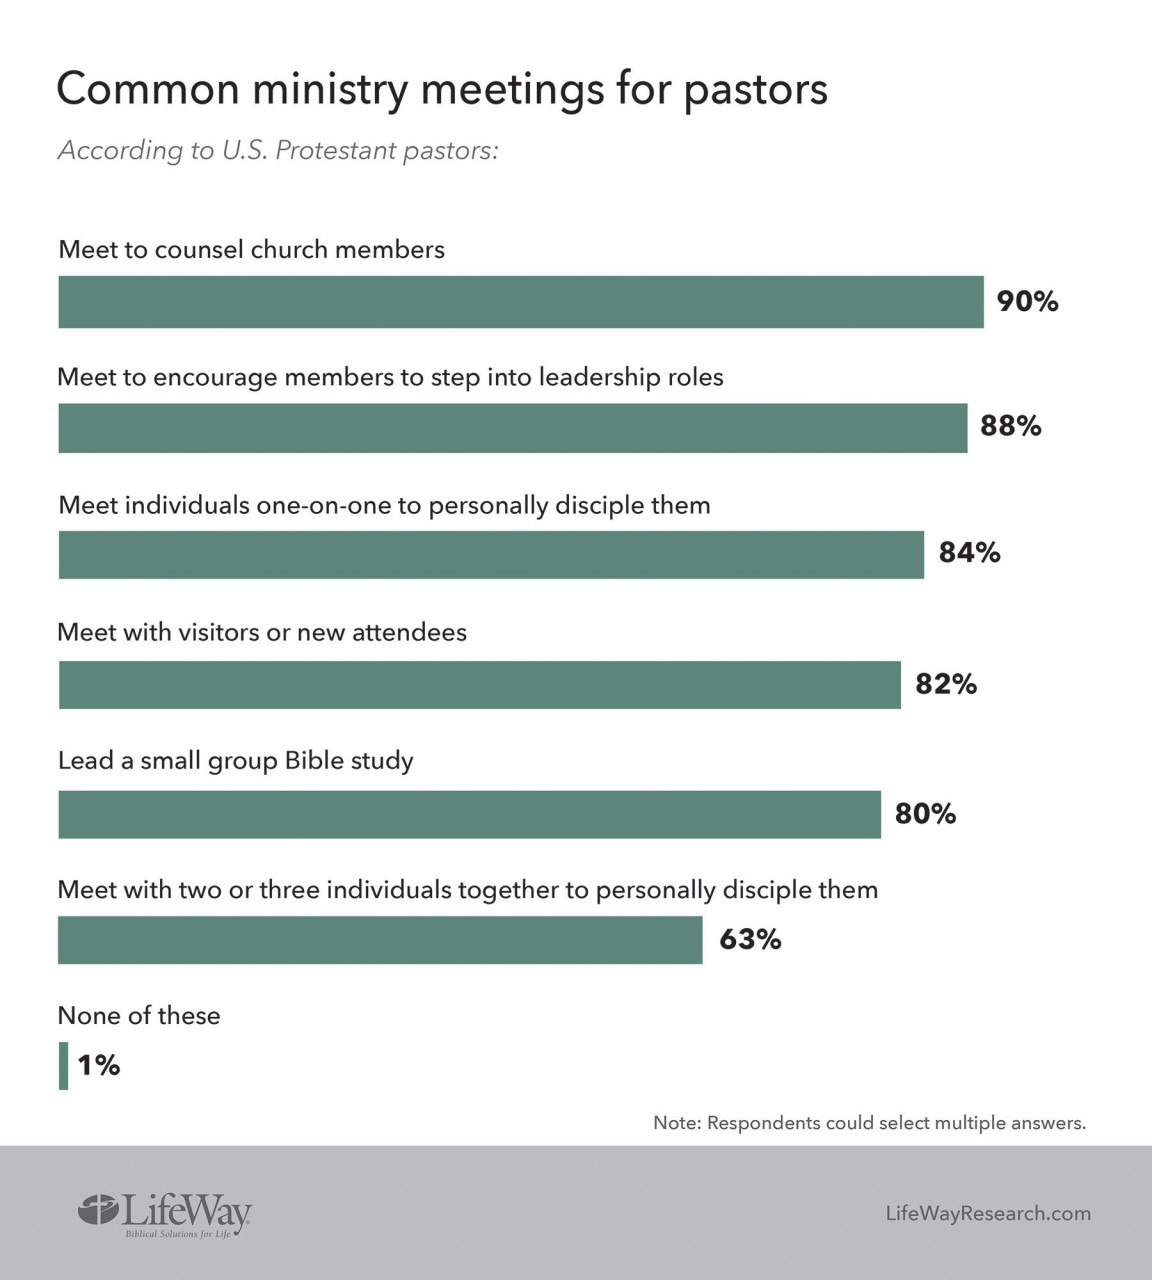 Pastors of larger churches more likely to regularly counsel and disciple members